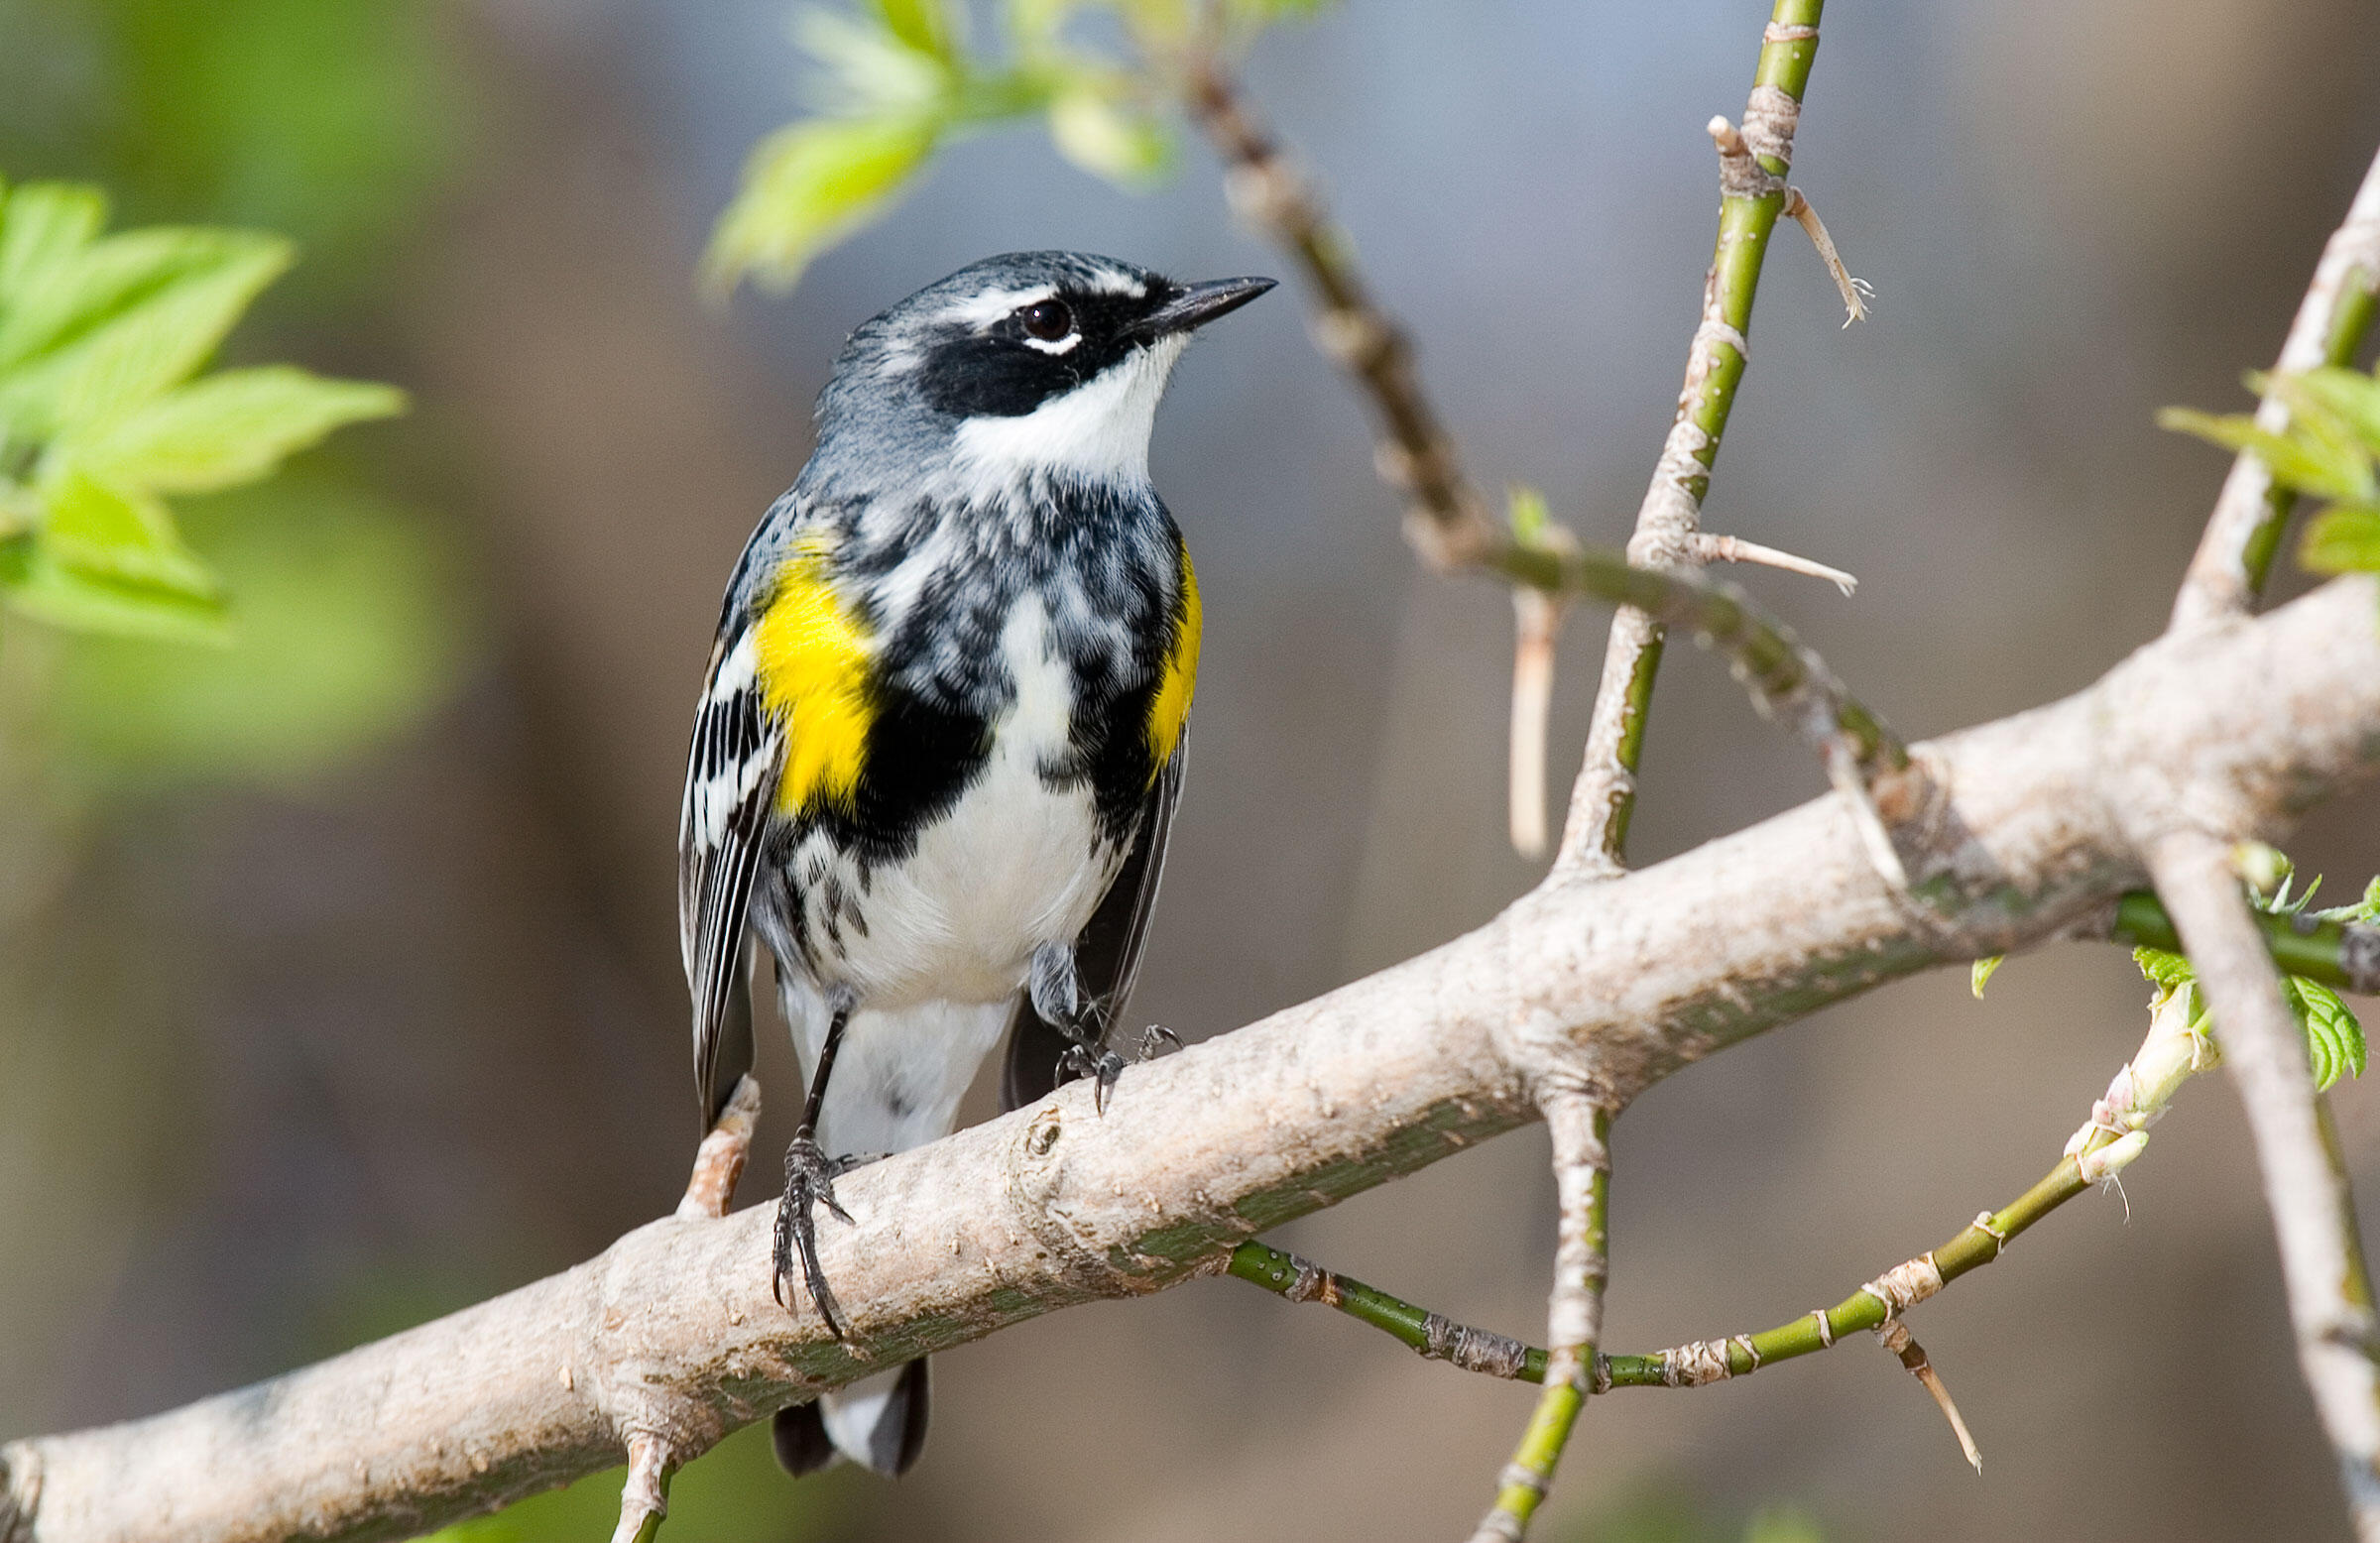 Most parulids winter deep in the tropics, and the timing of their northward migration is dictated by instinct. Yellow-rumped Warblers, however, may be more flexible because they mainly winter in the southern United States. Kenn Kaufman